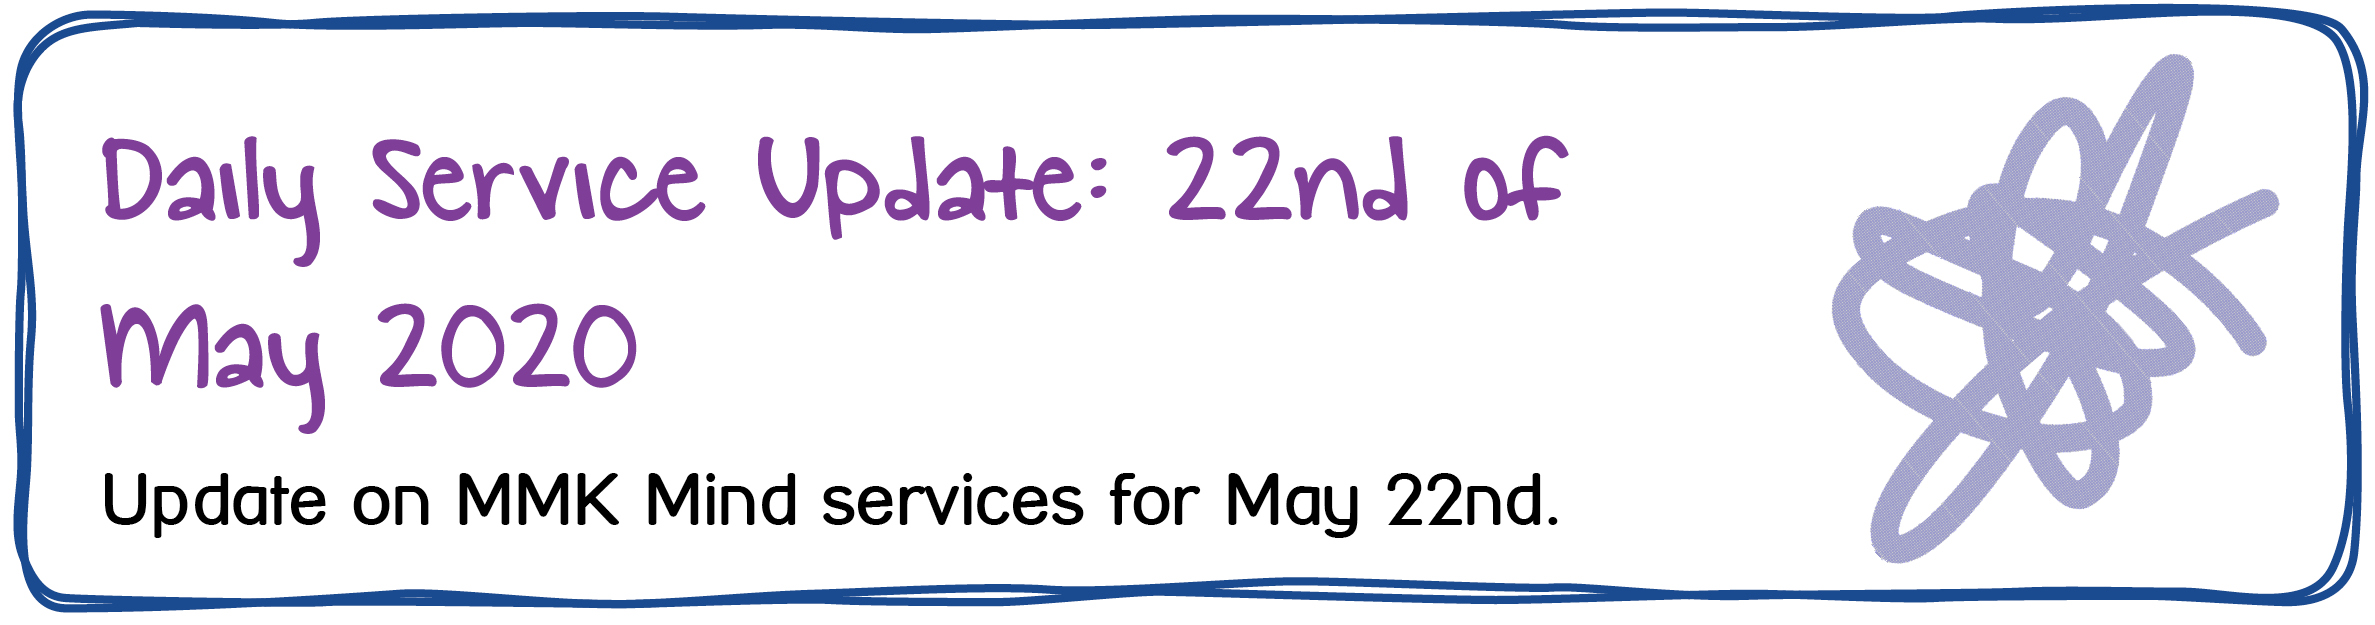 Daily Service Update: 22nd of May 2020. Update on MMK Mind services for May 22nd.